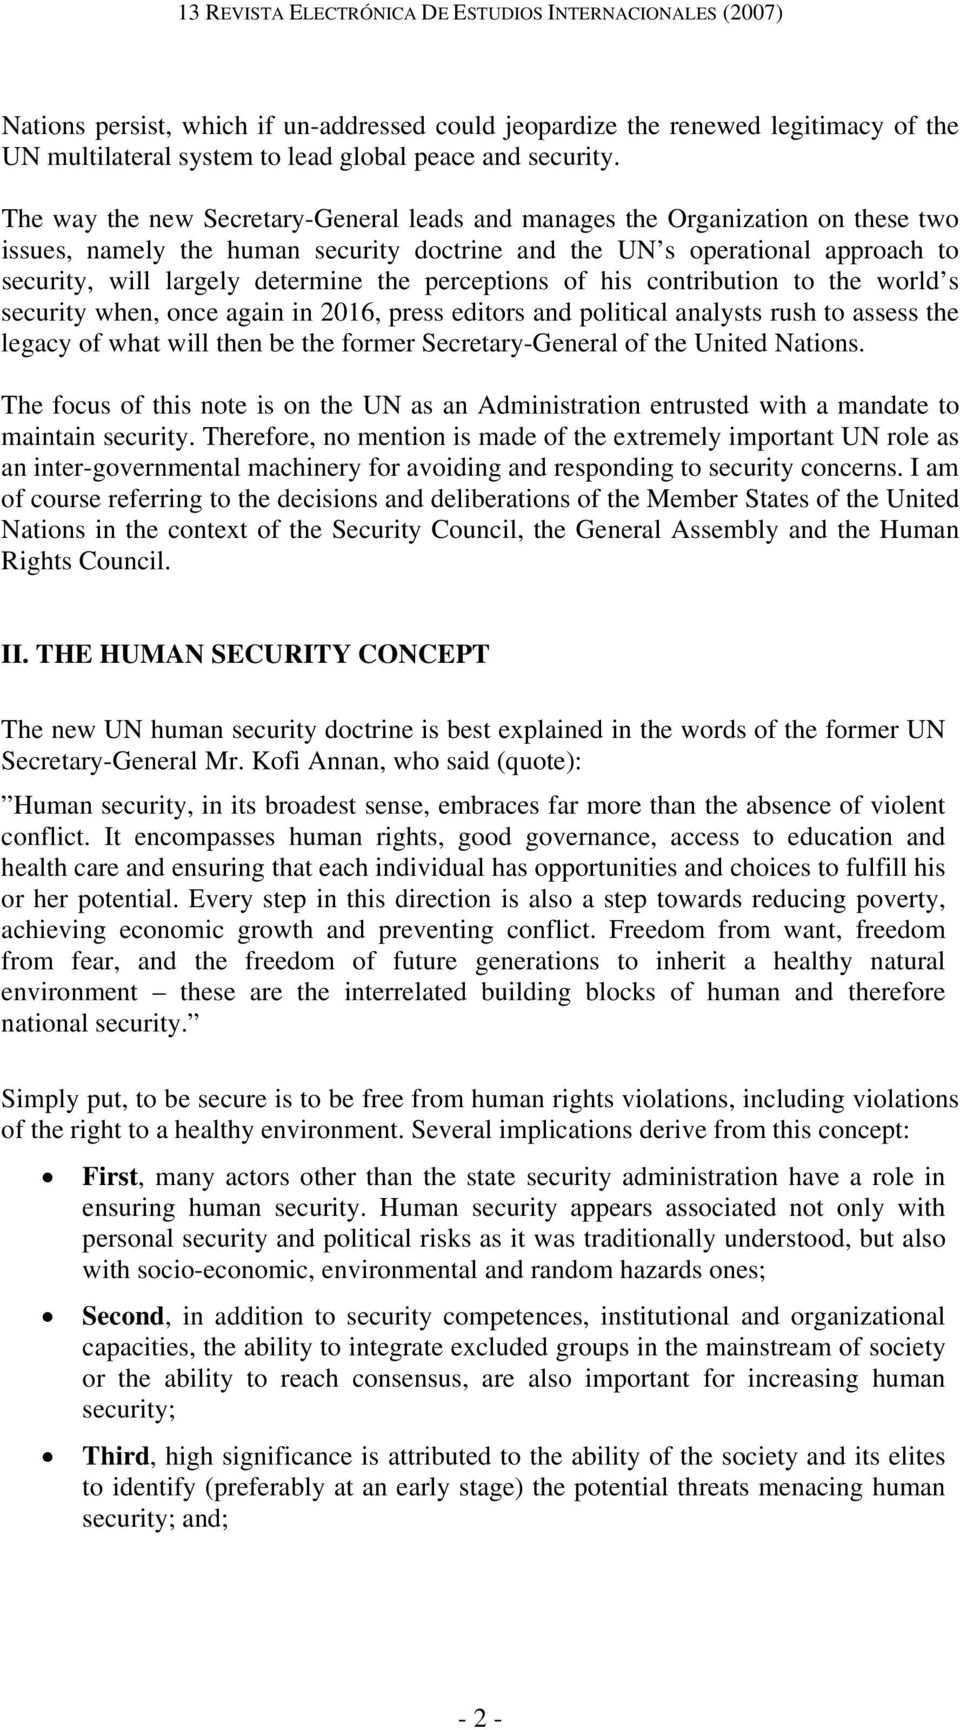 The way the new Secretary-General leads and manages the Organization on these two issues, namely the human security doctrine and the UN s operational approach to security, will largely determine the